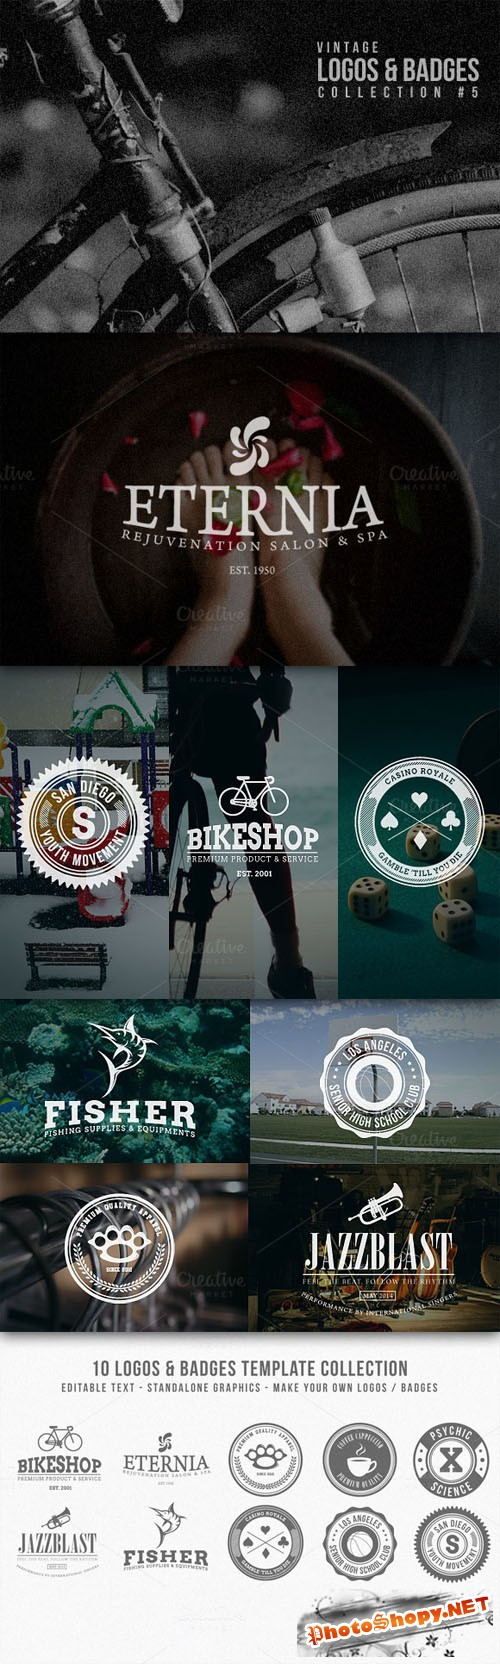 CreativeMarket - Vintage Logos & Badges Collection 5